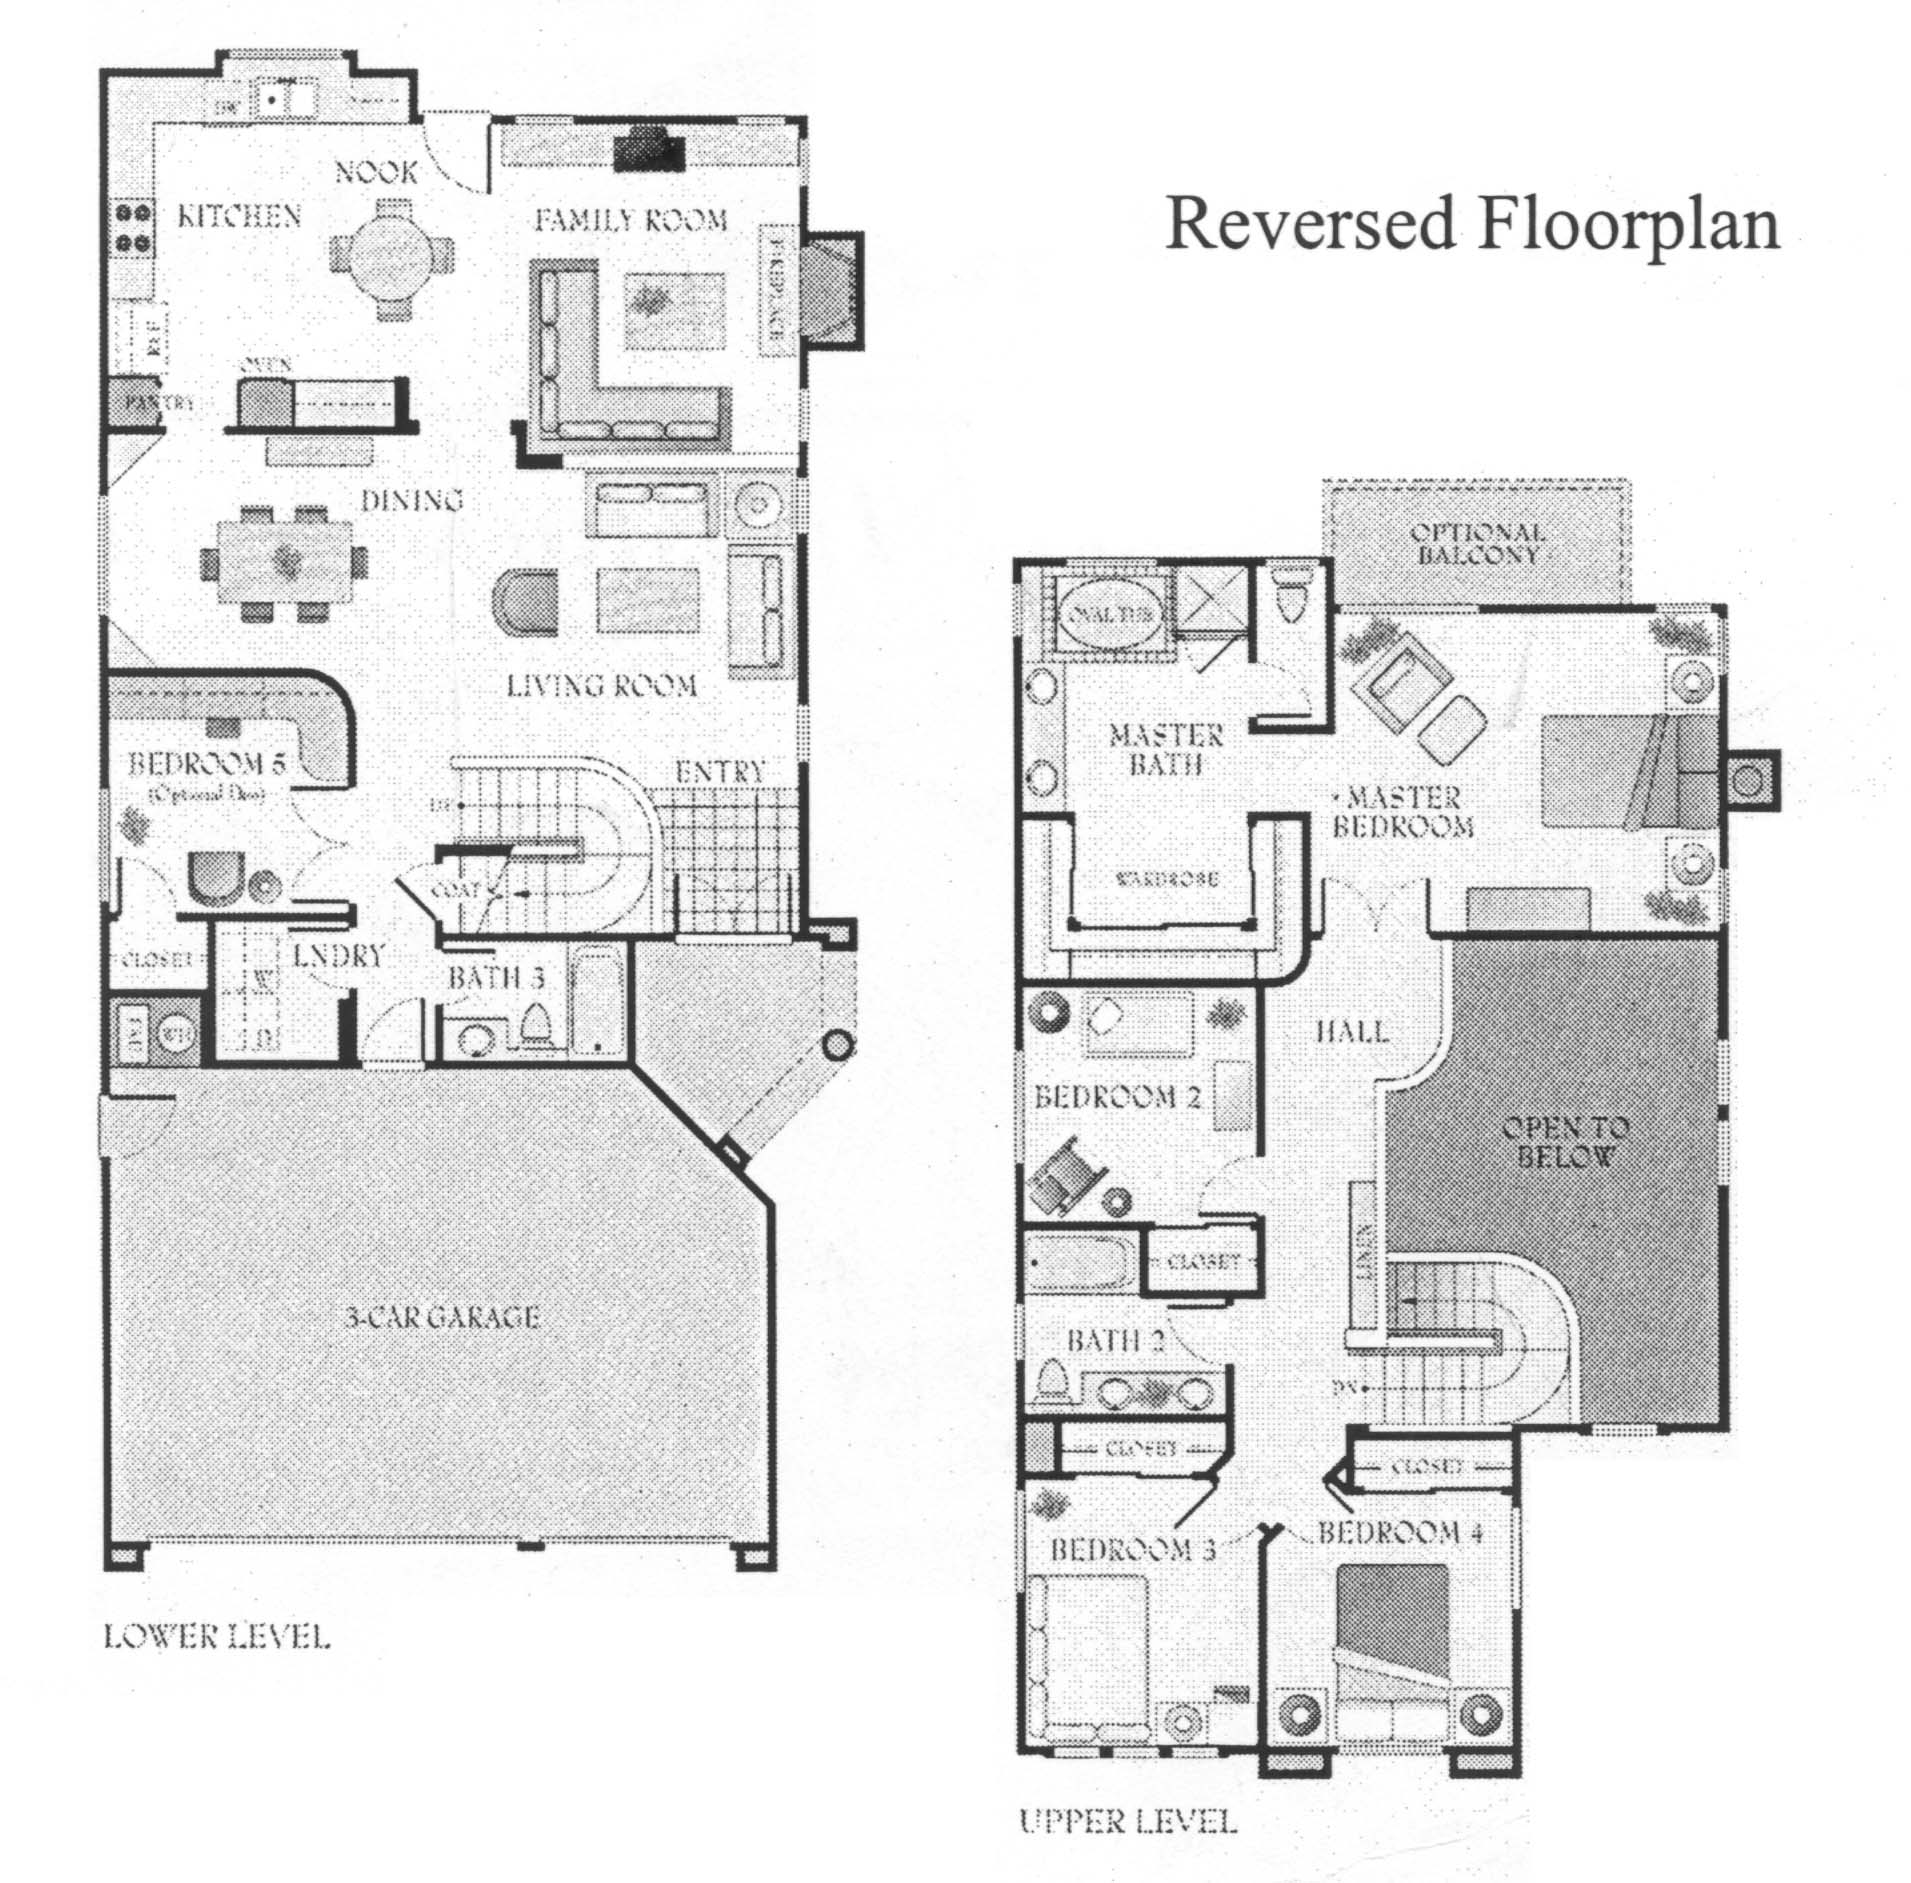 Master bath floor plans best layout room for 12x16 living room layout